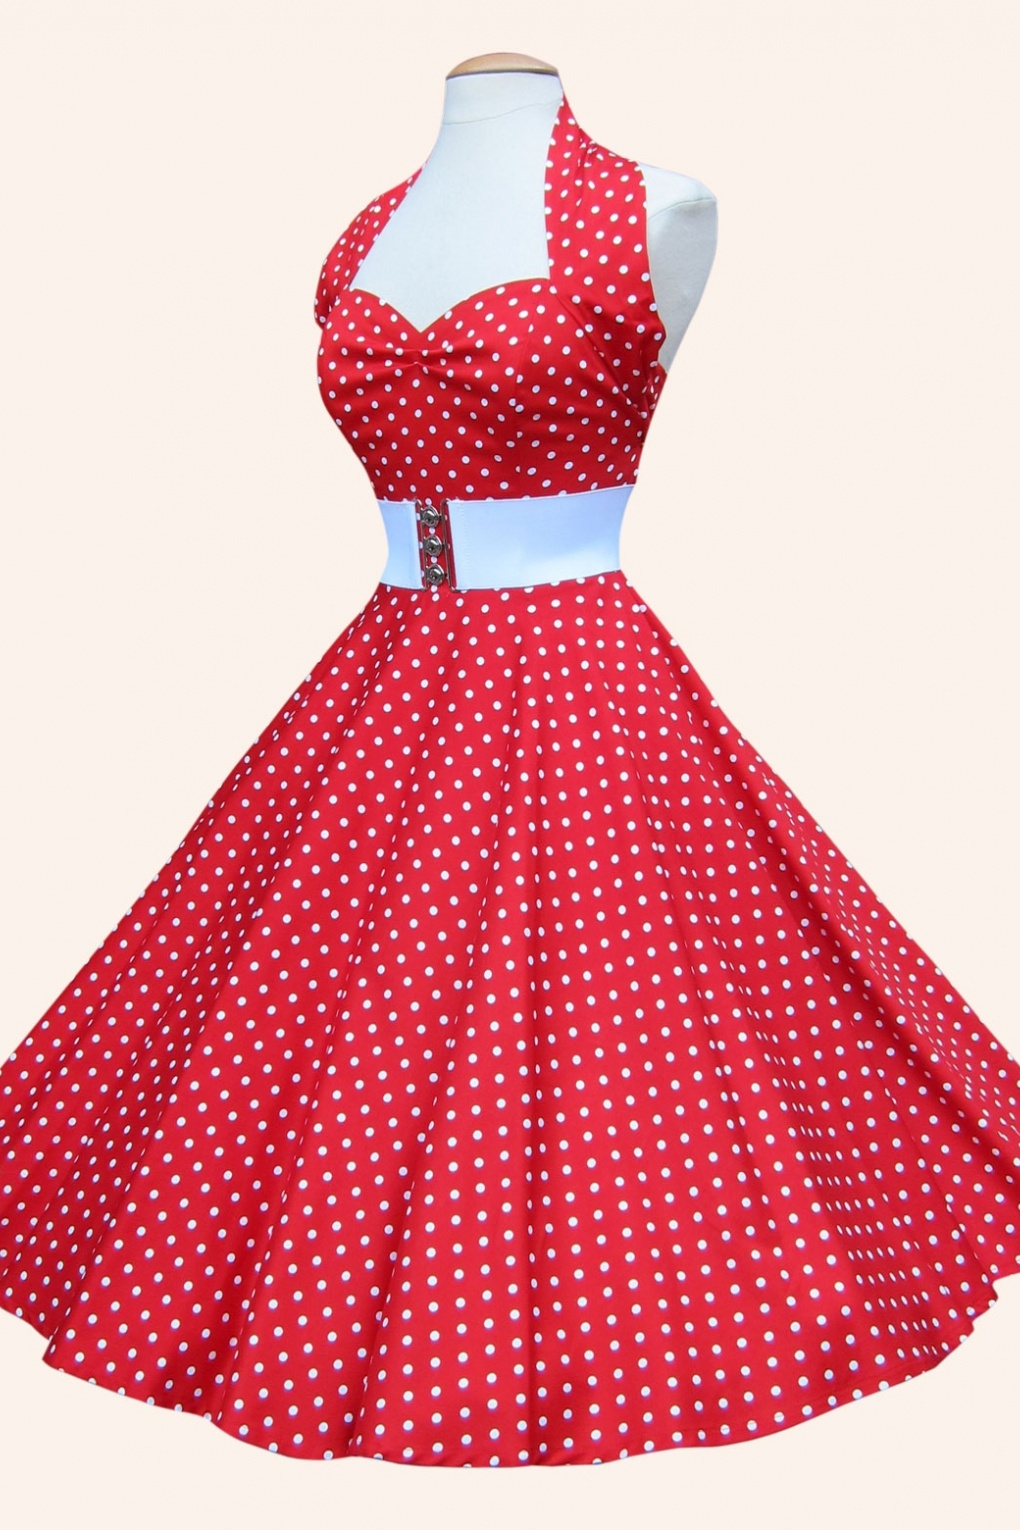 1950s Retro Halter Red White Spot Dress Cotton Sateen